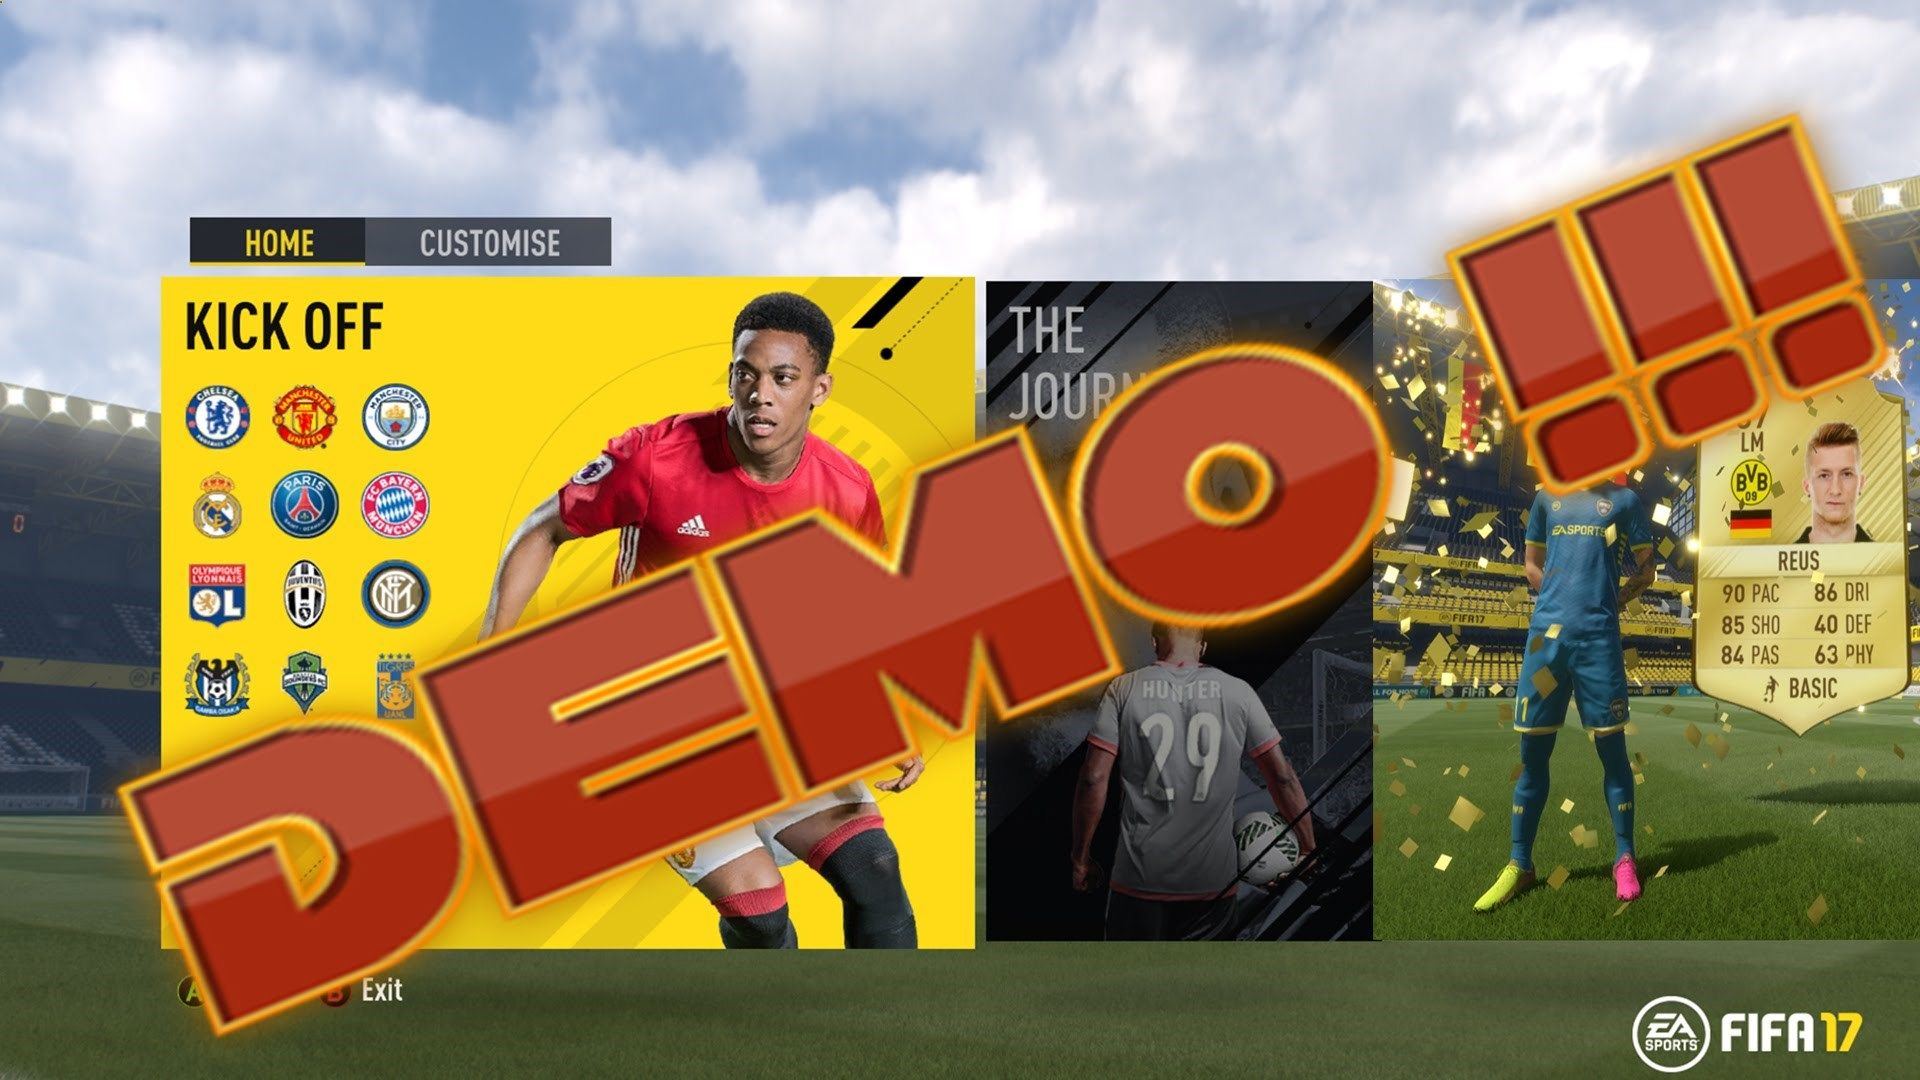 FIFA 17 Demo - The Journey Full DEMO Gameplay ------------------------------------------------------------------------------------------- FIFA 17 Demo - The Journey Full DEMO Gameplay MANU vs CHELSEA www.google.com The wait is over. Yes it is FIFA 17 DEMO. FIFA 17 DEMO has been released on 13th September 2016 and it is already a blast. The all new features in FIFA 17 has been great. www.google.com There are 12 teams is FIFA 17 DEMO and a single match from FIFA 17 DEMO The Journey where...